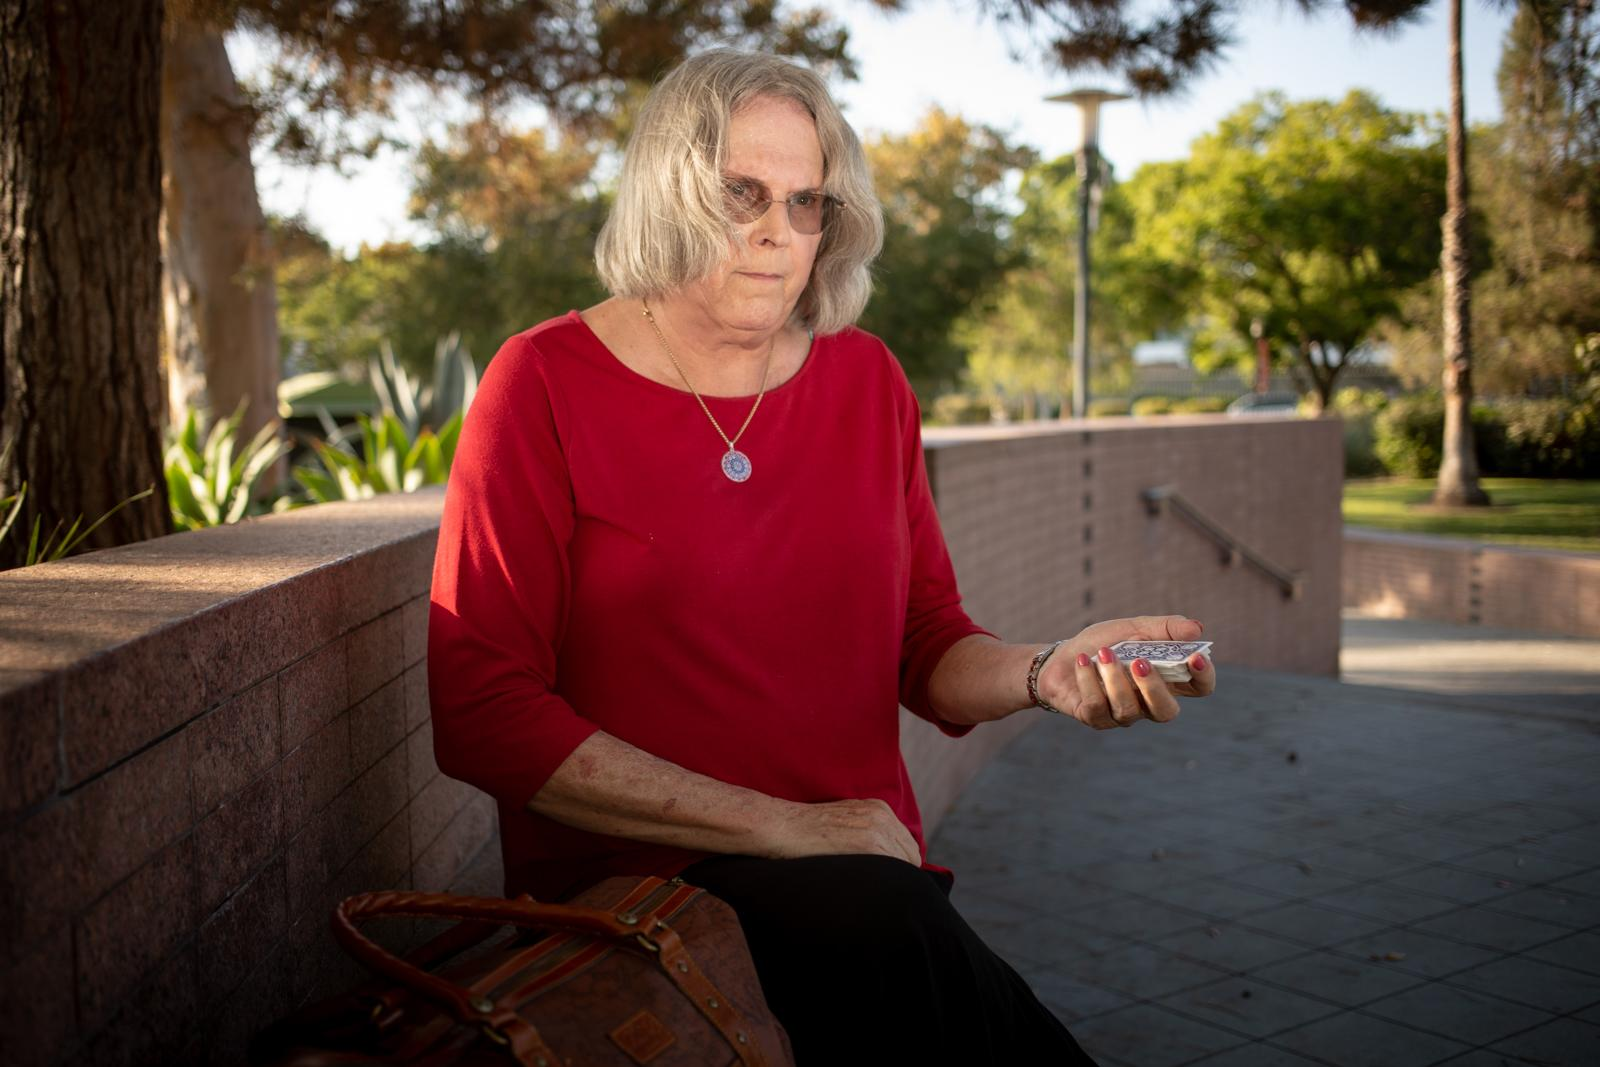 Malinda Lodge, 68, performs a card trick at the La Brea TarPits in Los Angeles.